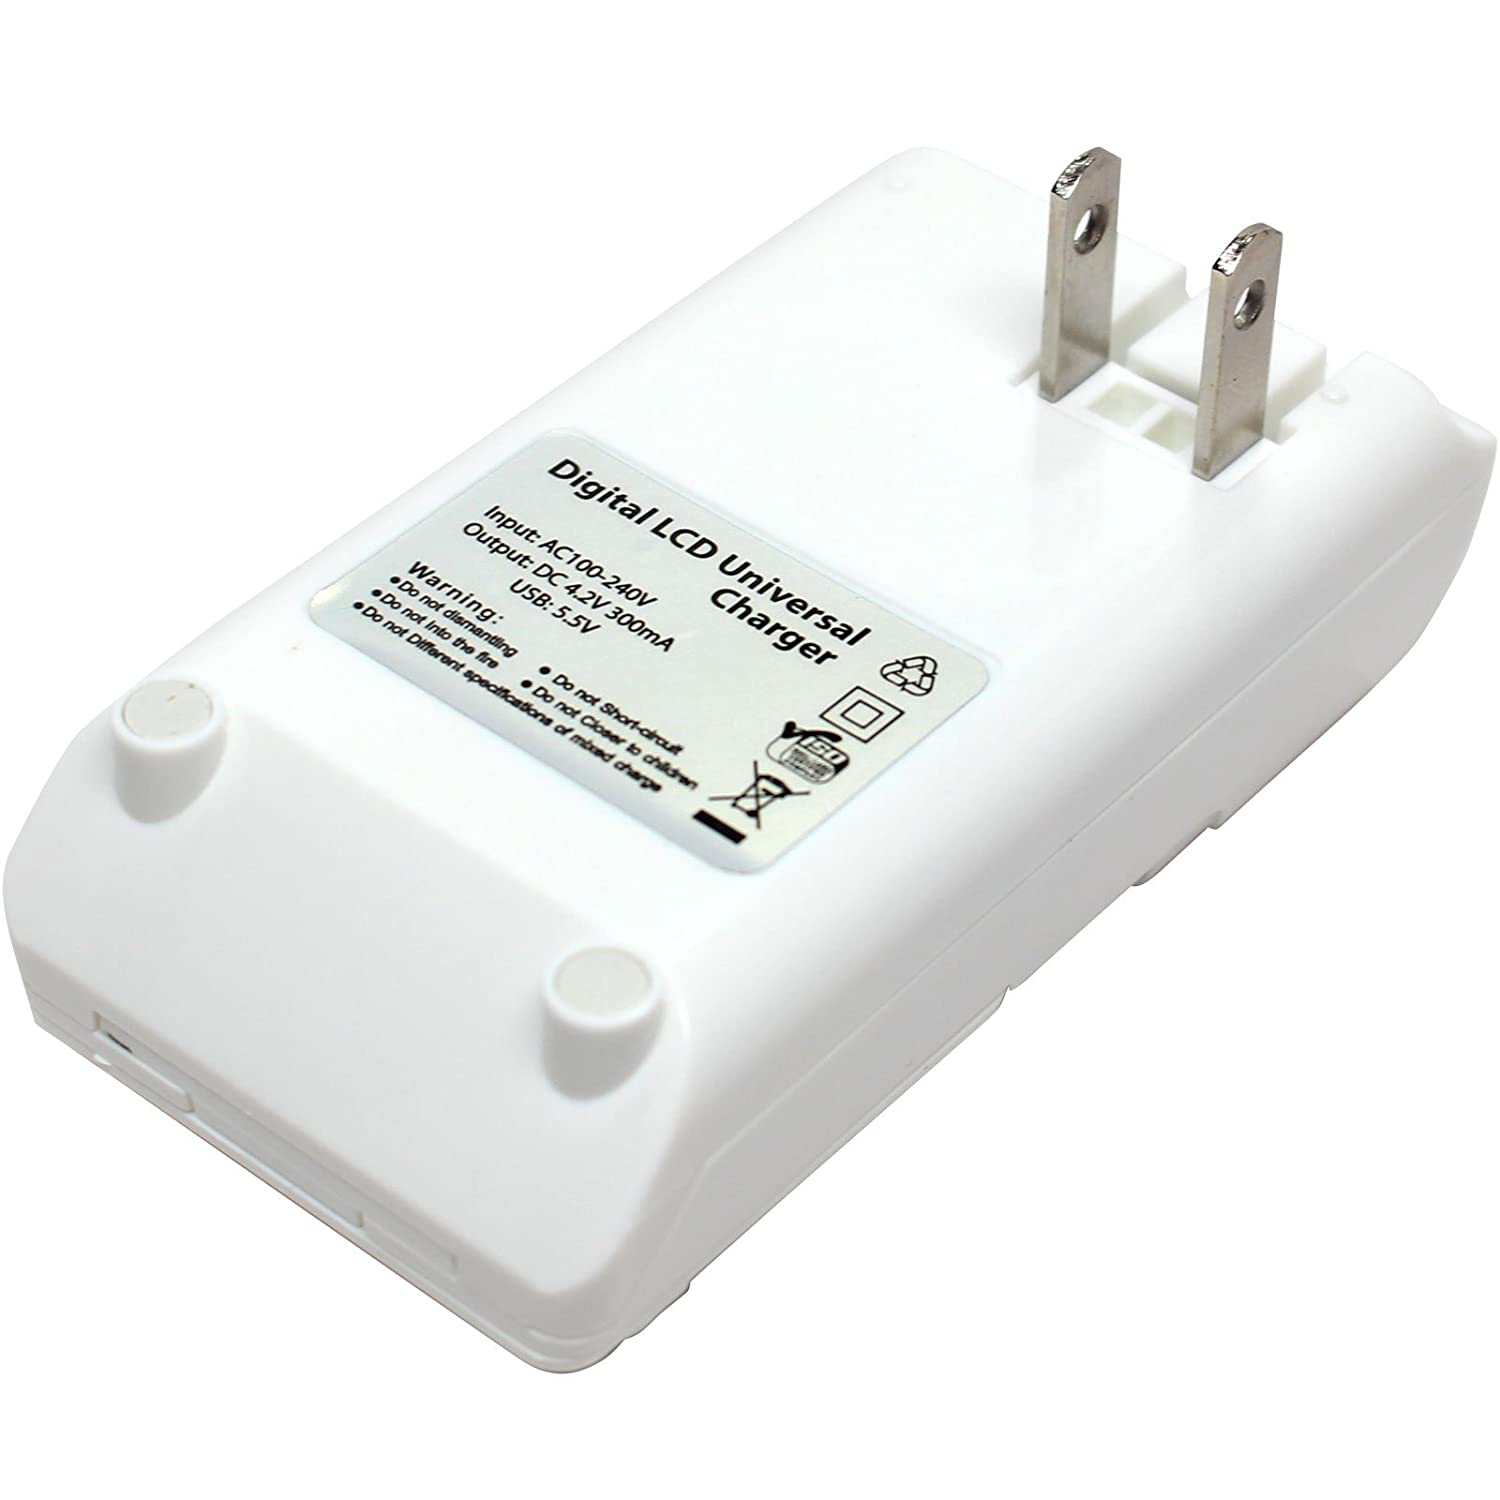 190582-0001 Squeezebox Duet Controller Replacement Compatible with Logitech Harmony 1100 100//240V Harmony 1100i Harmony 1000 Logitech L-LU18 Universal Charger L-LU18 F12440056 Harmony 915